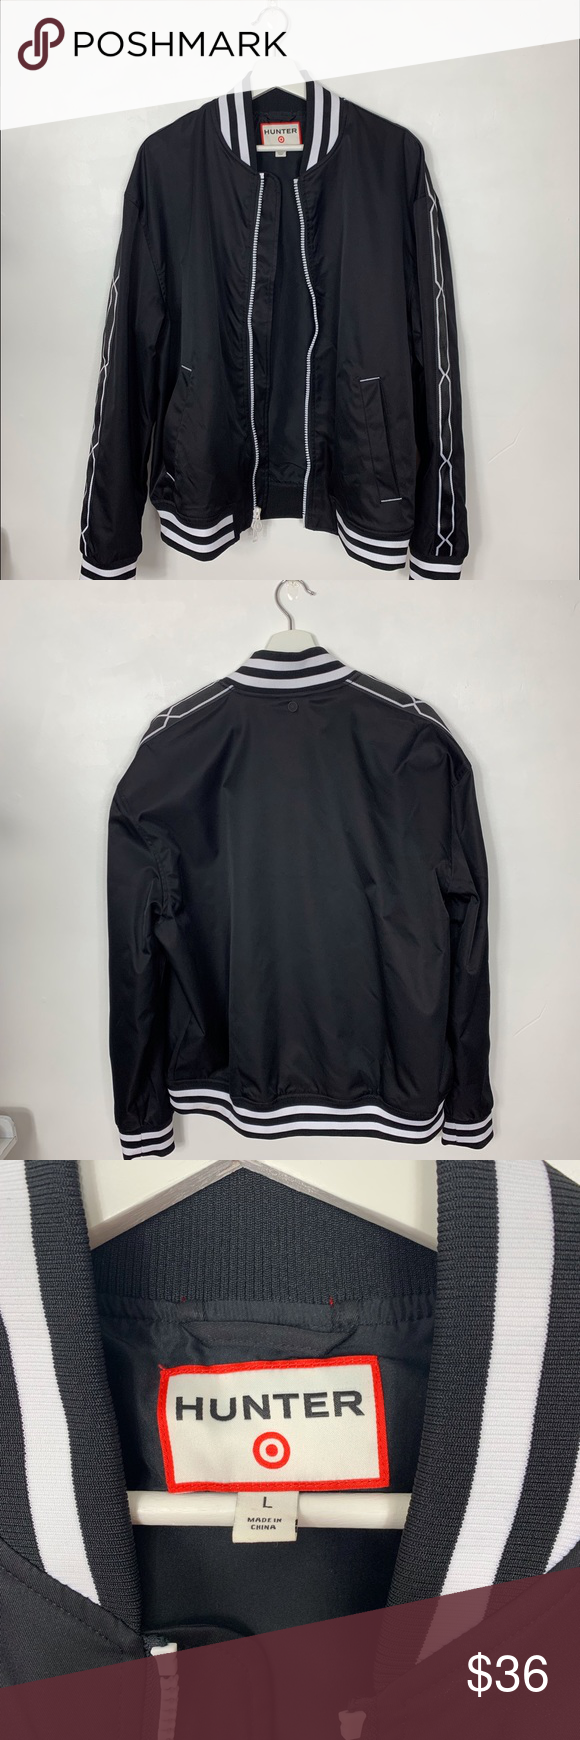 Hunter For Target Black And White Bomber Jacket Hunter For Target Size Lg Men S But I M An Xl 1x Woman S White Bomber Jacket Men S Coats And Jackets Cool Suits [ 1740 x 580 Pixel ]